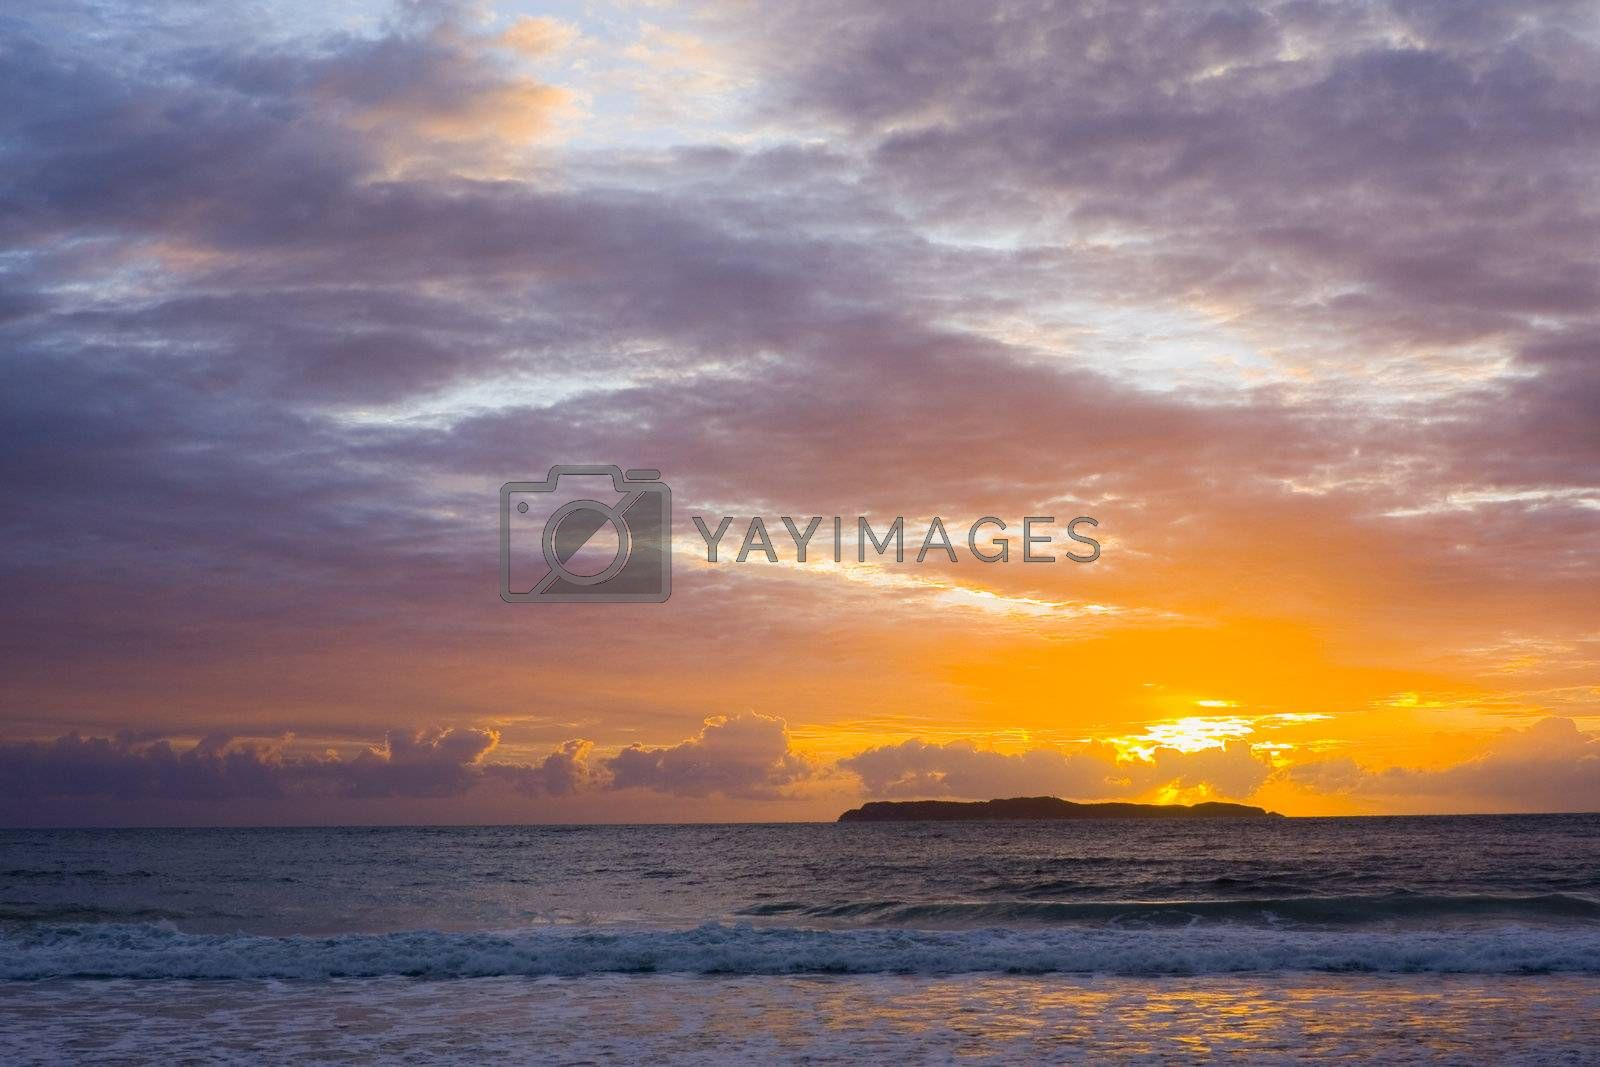 Dramatic sunrise over the sea with an island in the background